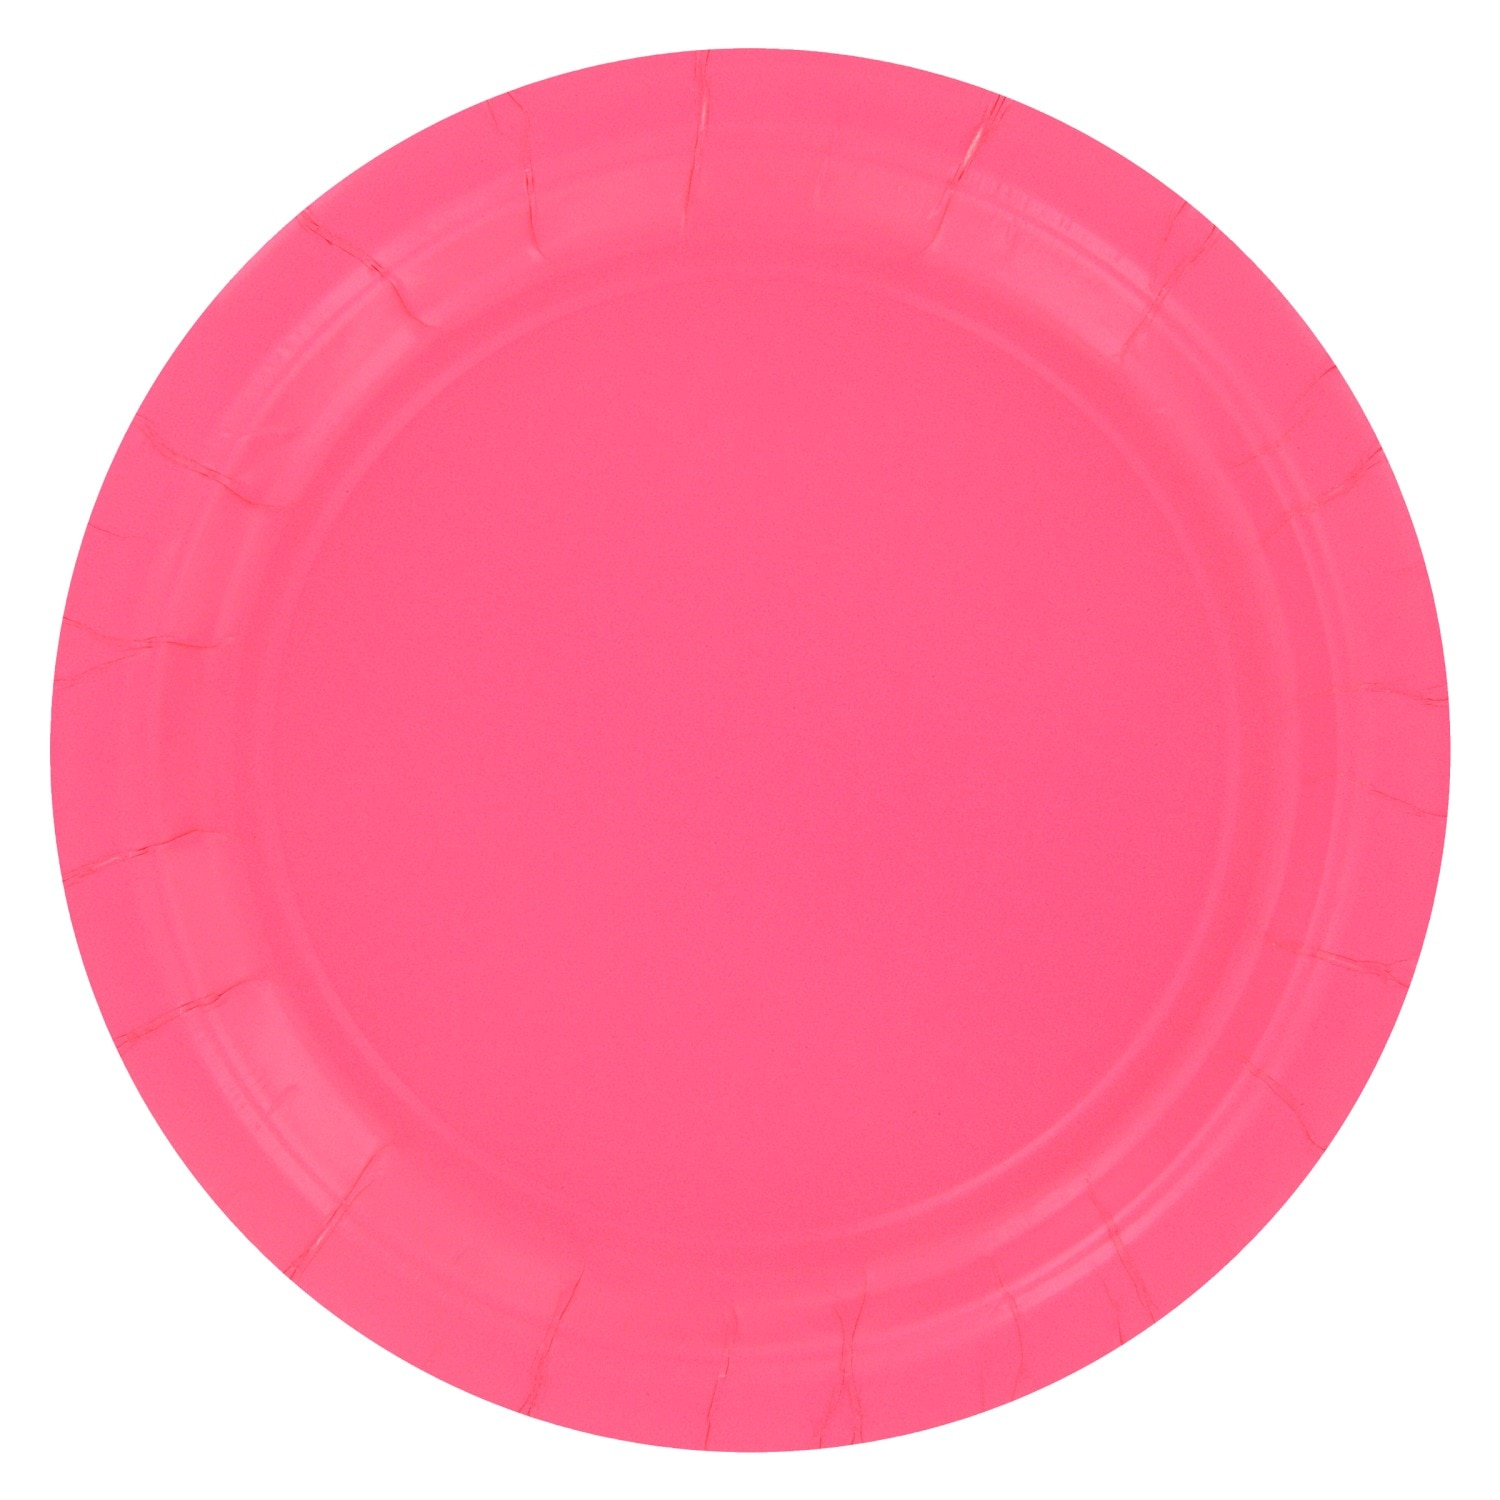 Napkins And Premium Quality Plasticware First Communion Party Supplies Girl Pink Theme With Bright Pink Accents Serves 18 Guests And Includes Extra Large Dinner or Luncheon Plates Dessert Plates